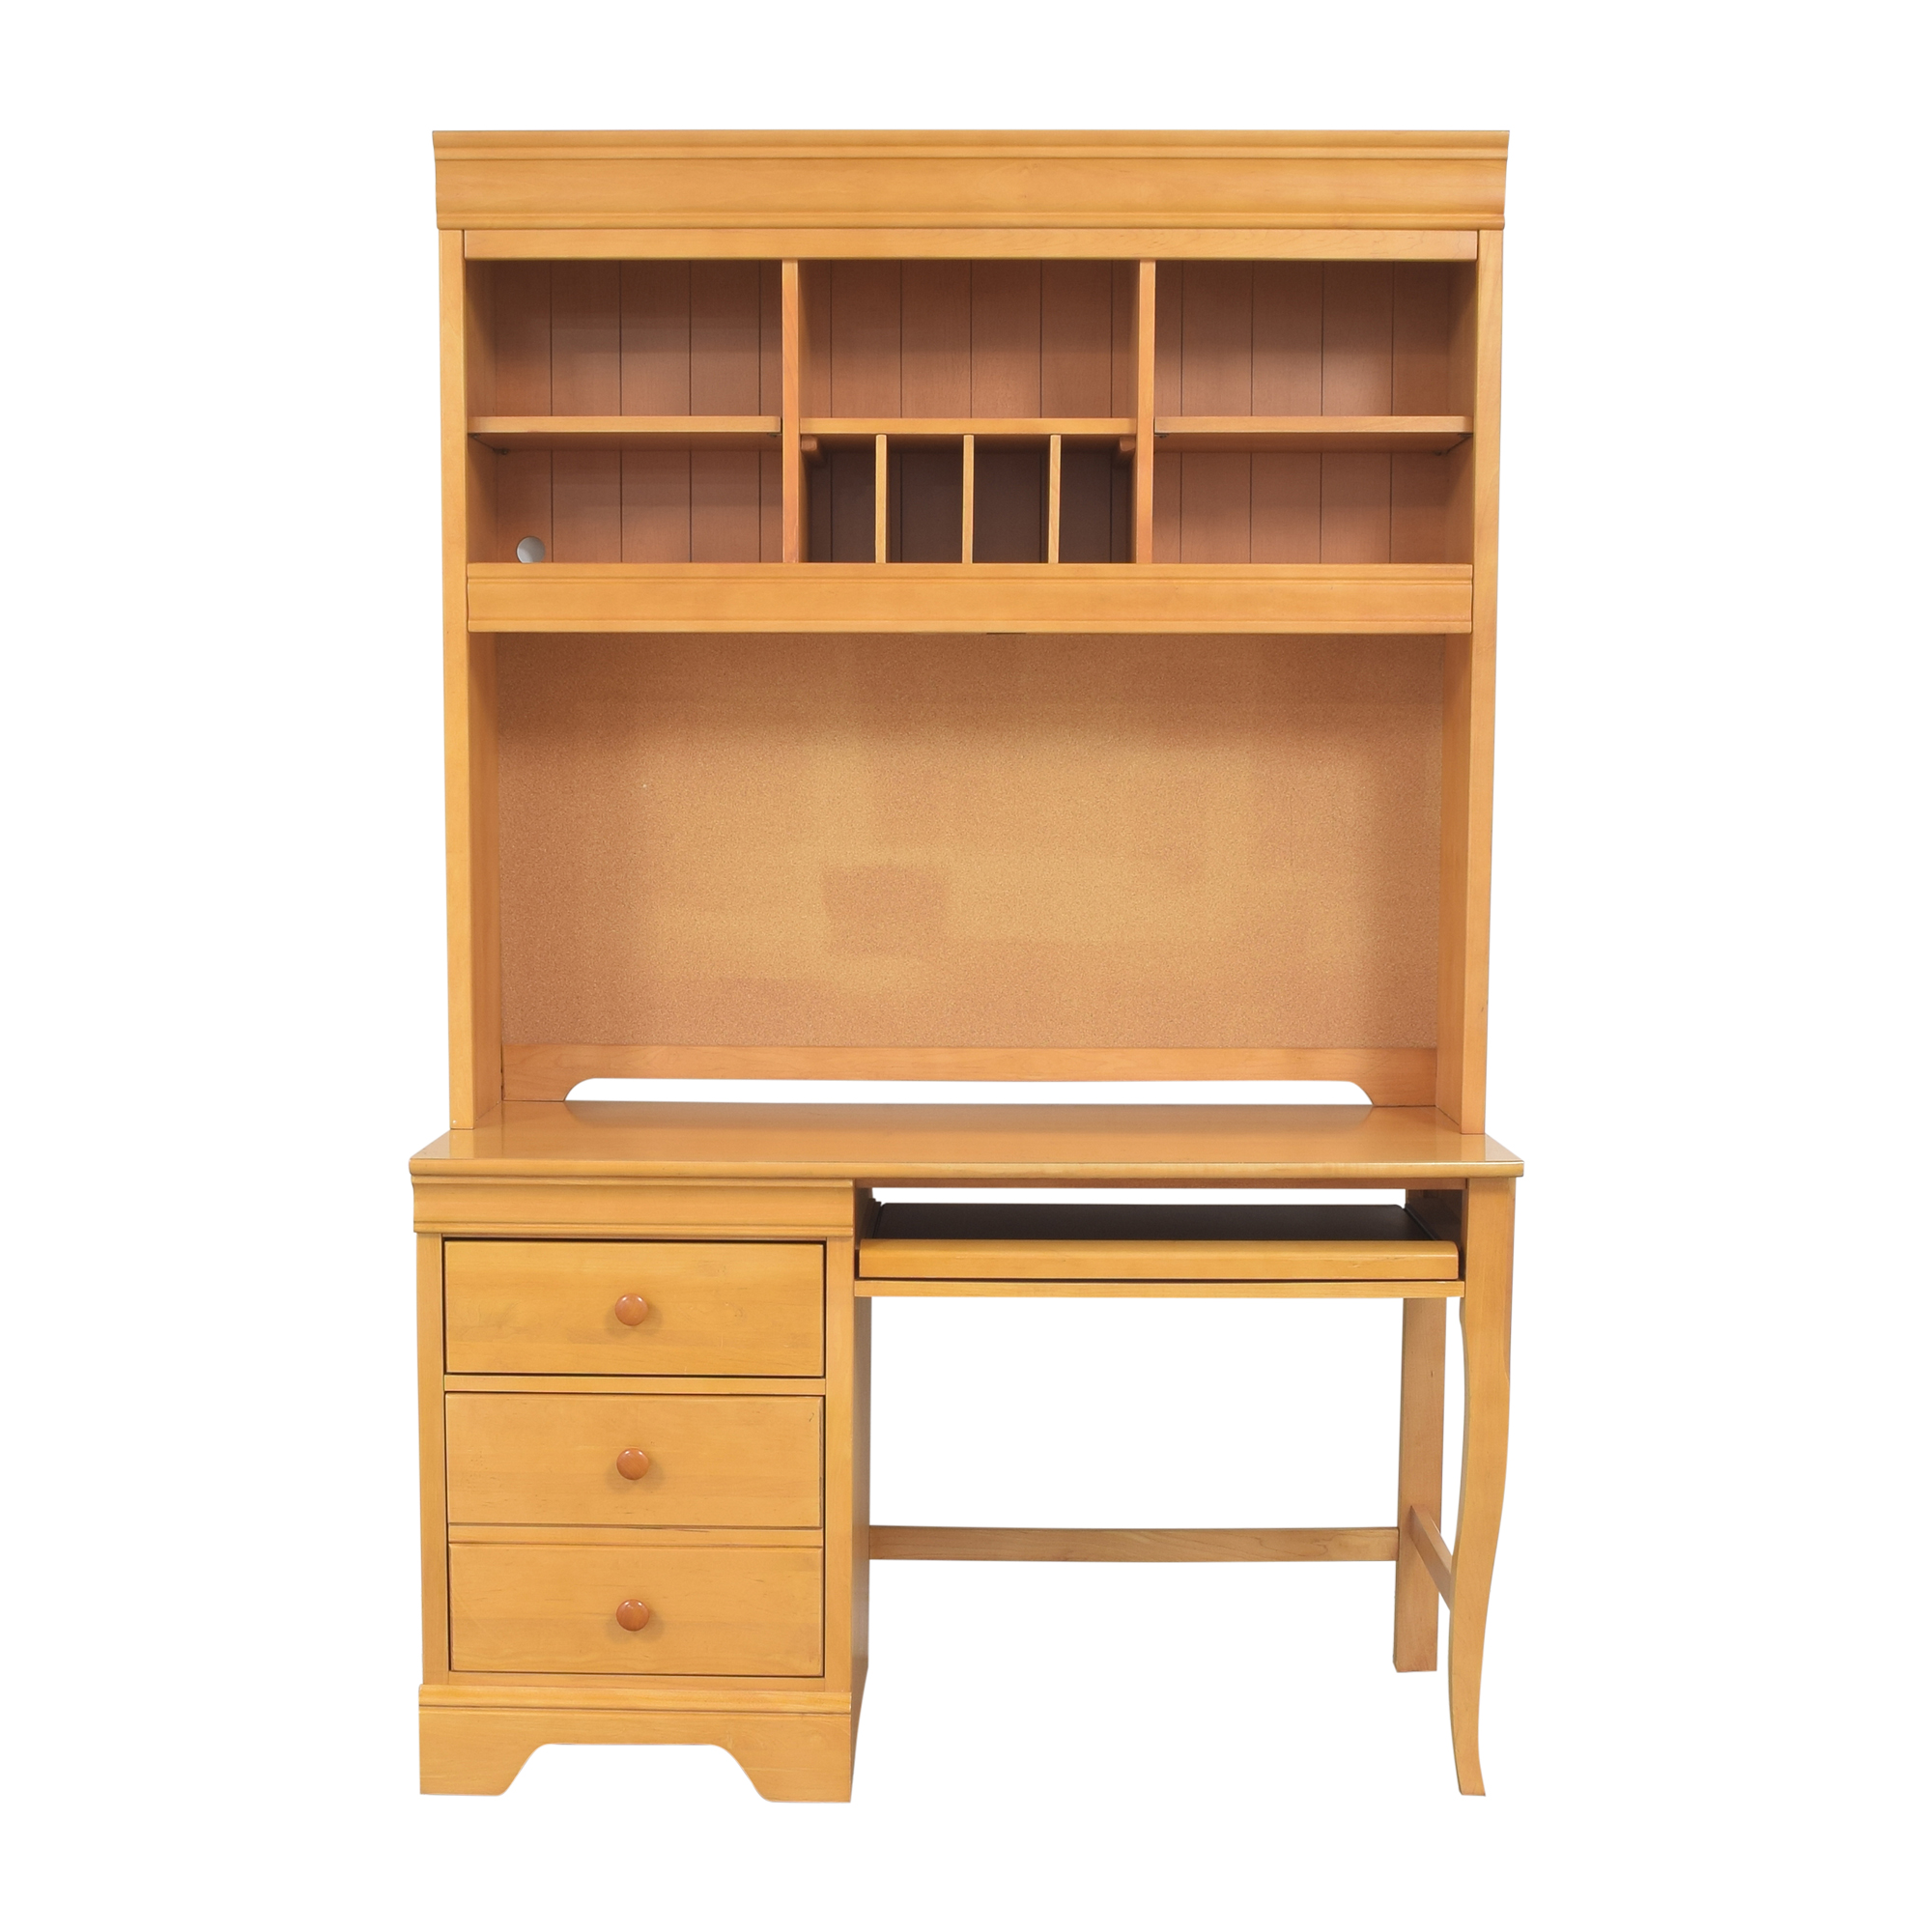 Stanley Furniture Stanley Furniture Pedestal Desk with Hutch price